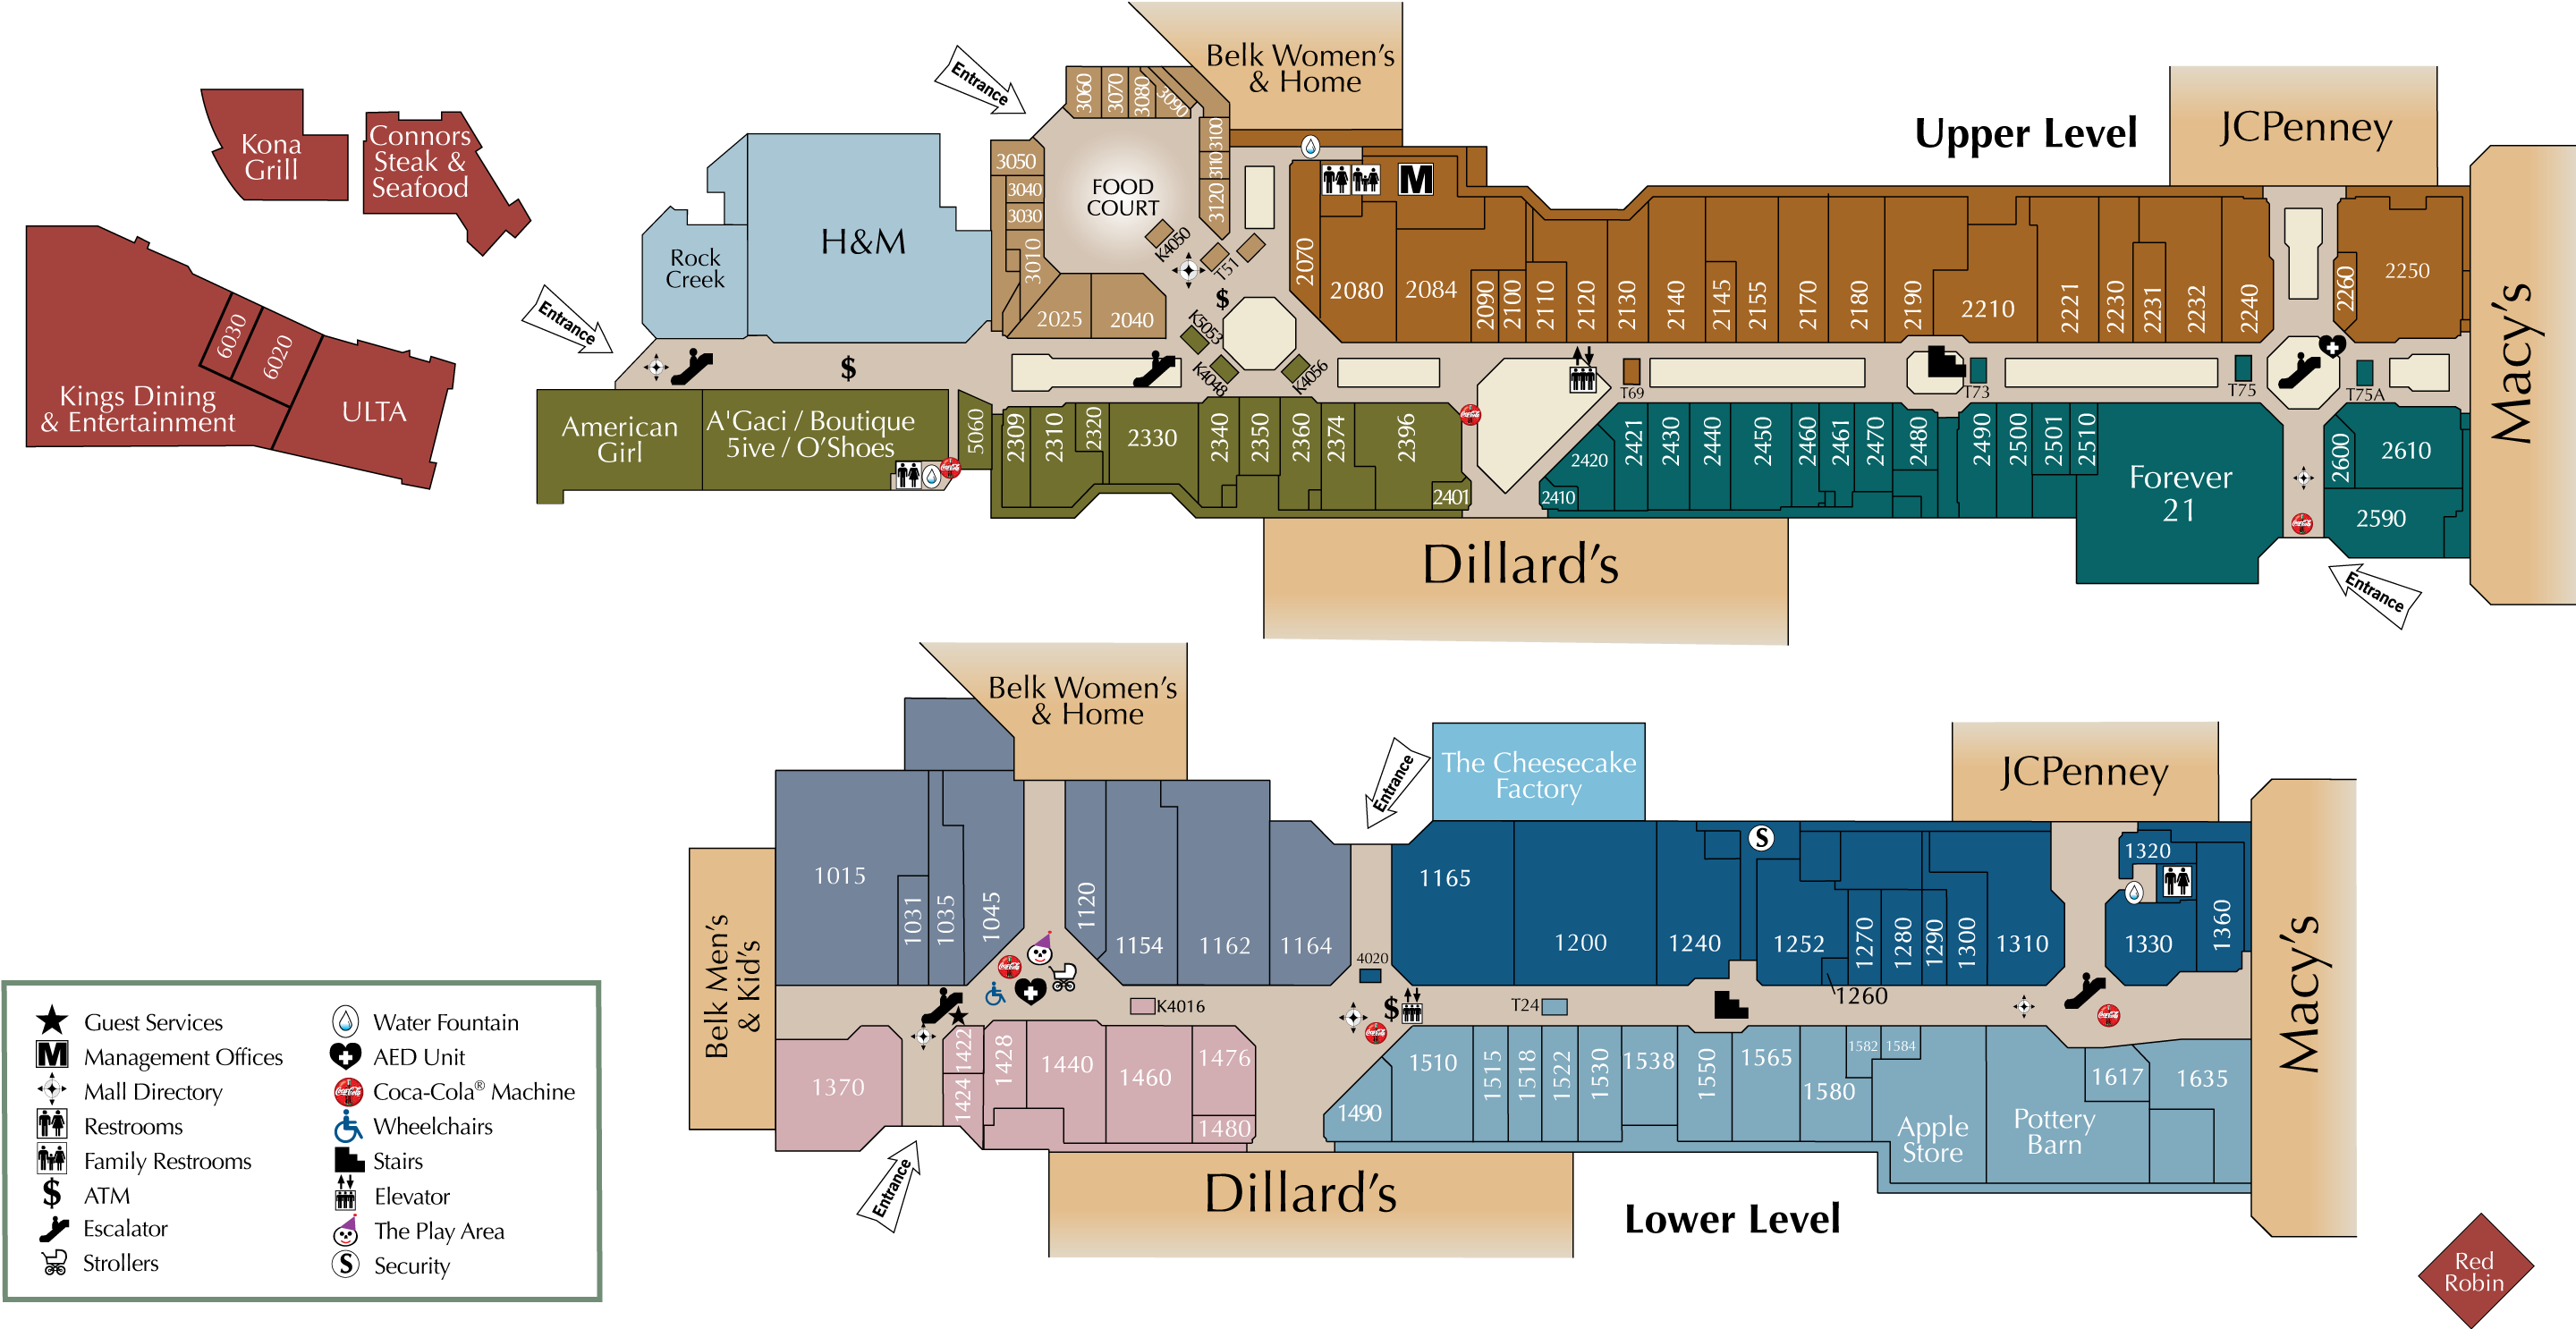 City Creek Mall Map Mall Directory | CoolSprings Galleria